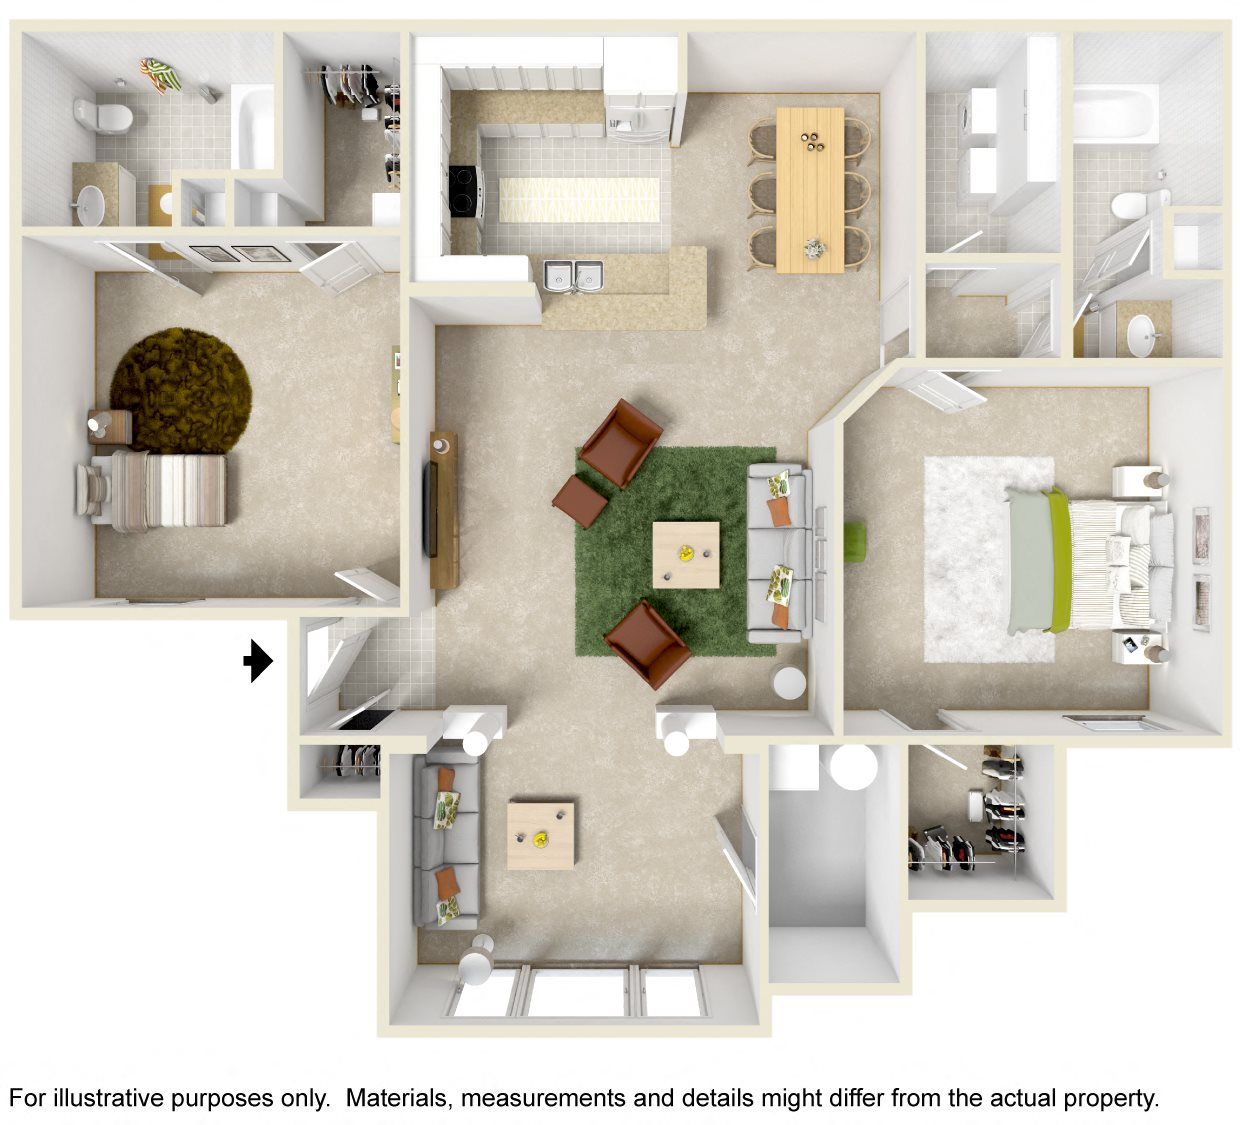 2 Bedroom Sunroom Floor Plan 3